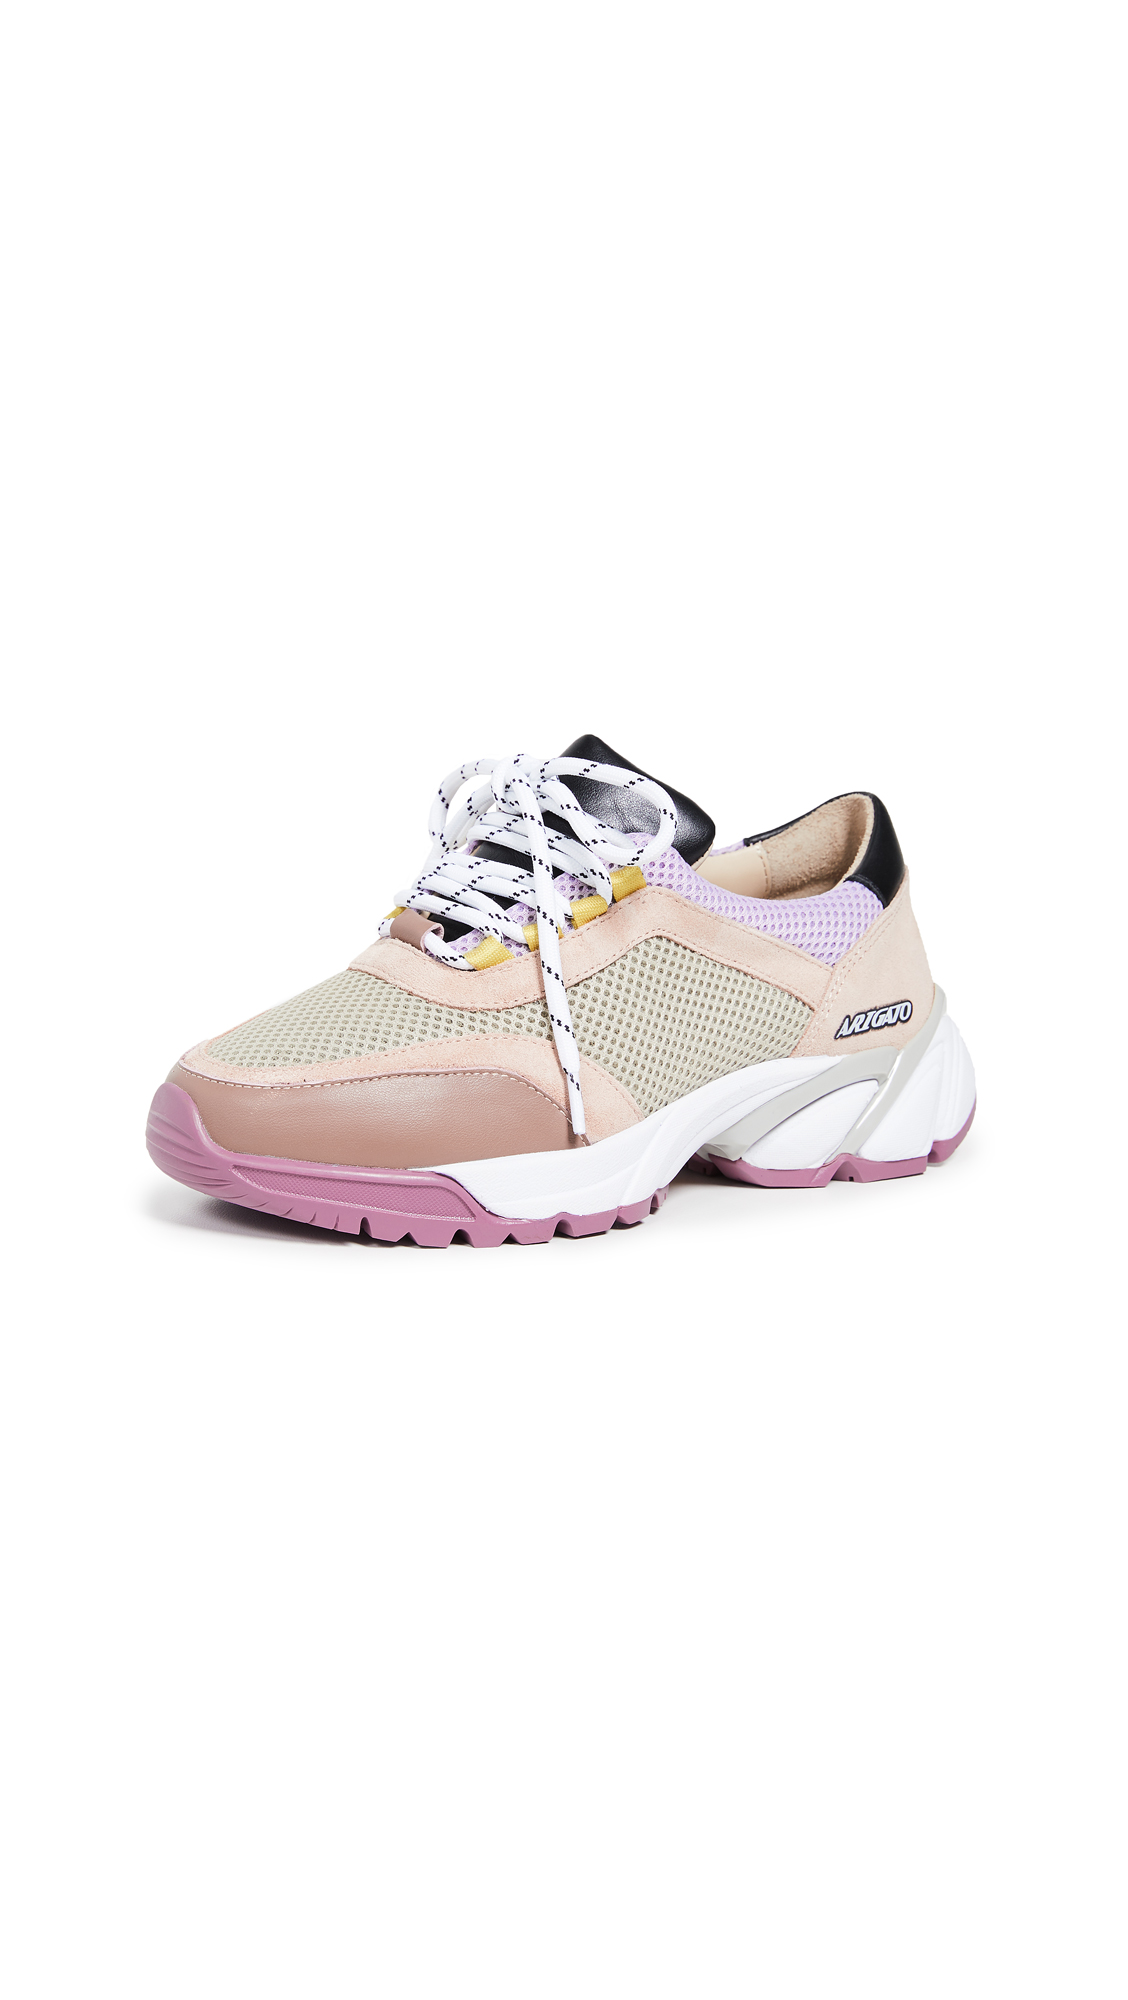 Axel Arigato System Runner Sneakers - Taupe/Pink